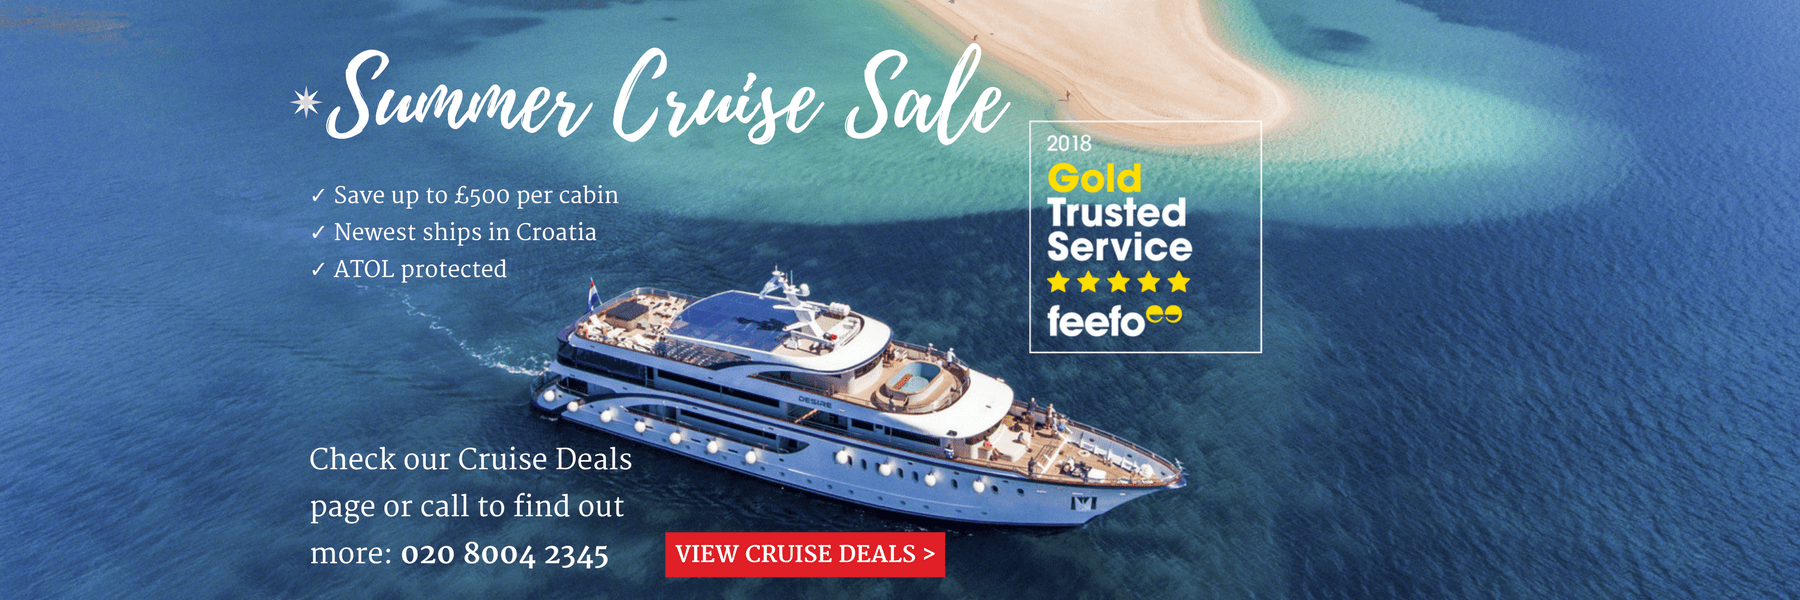 Summer Croatia Cruise Sale